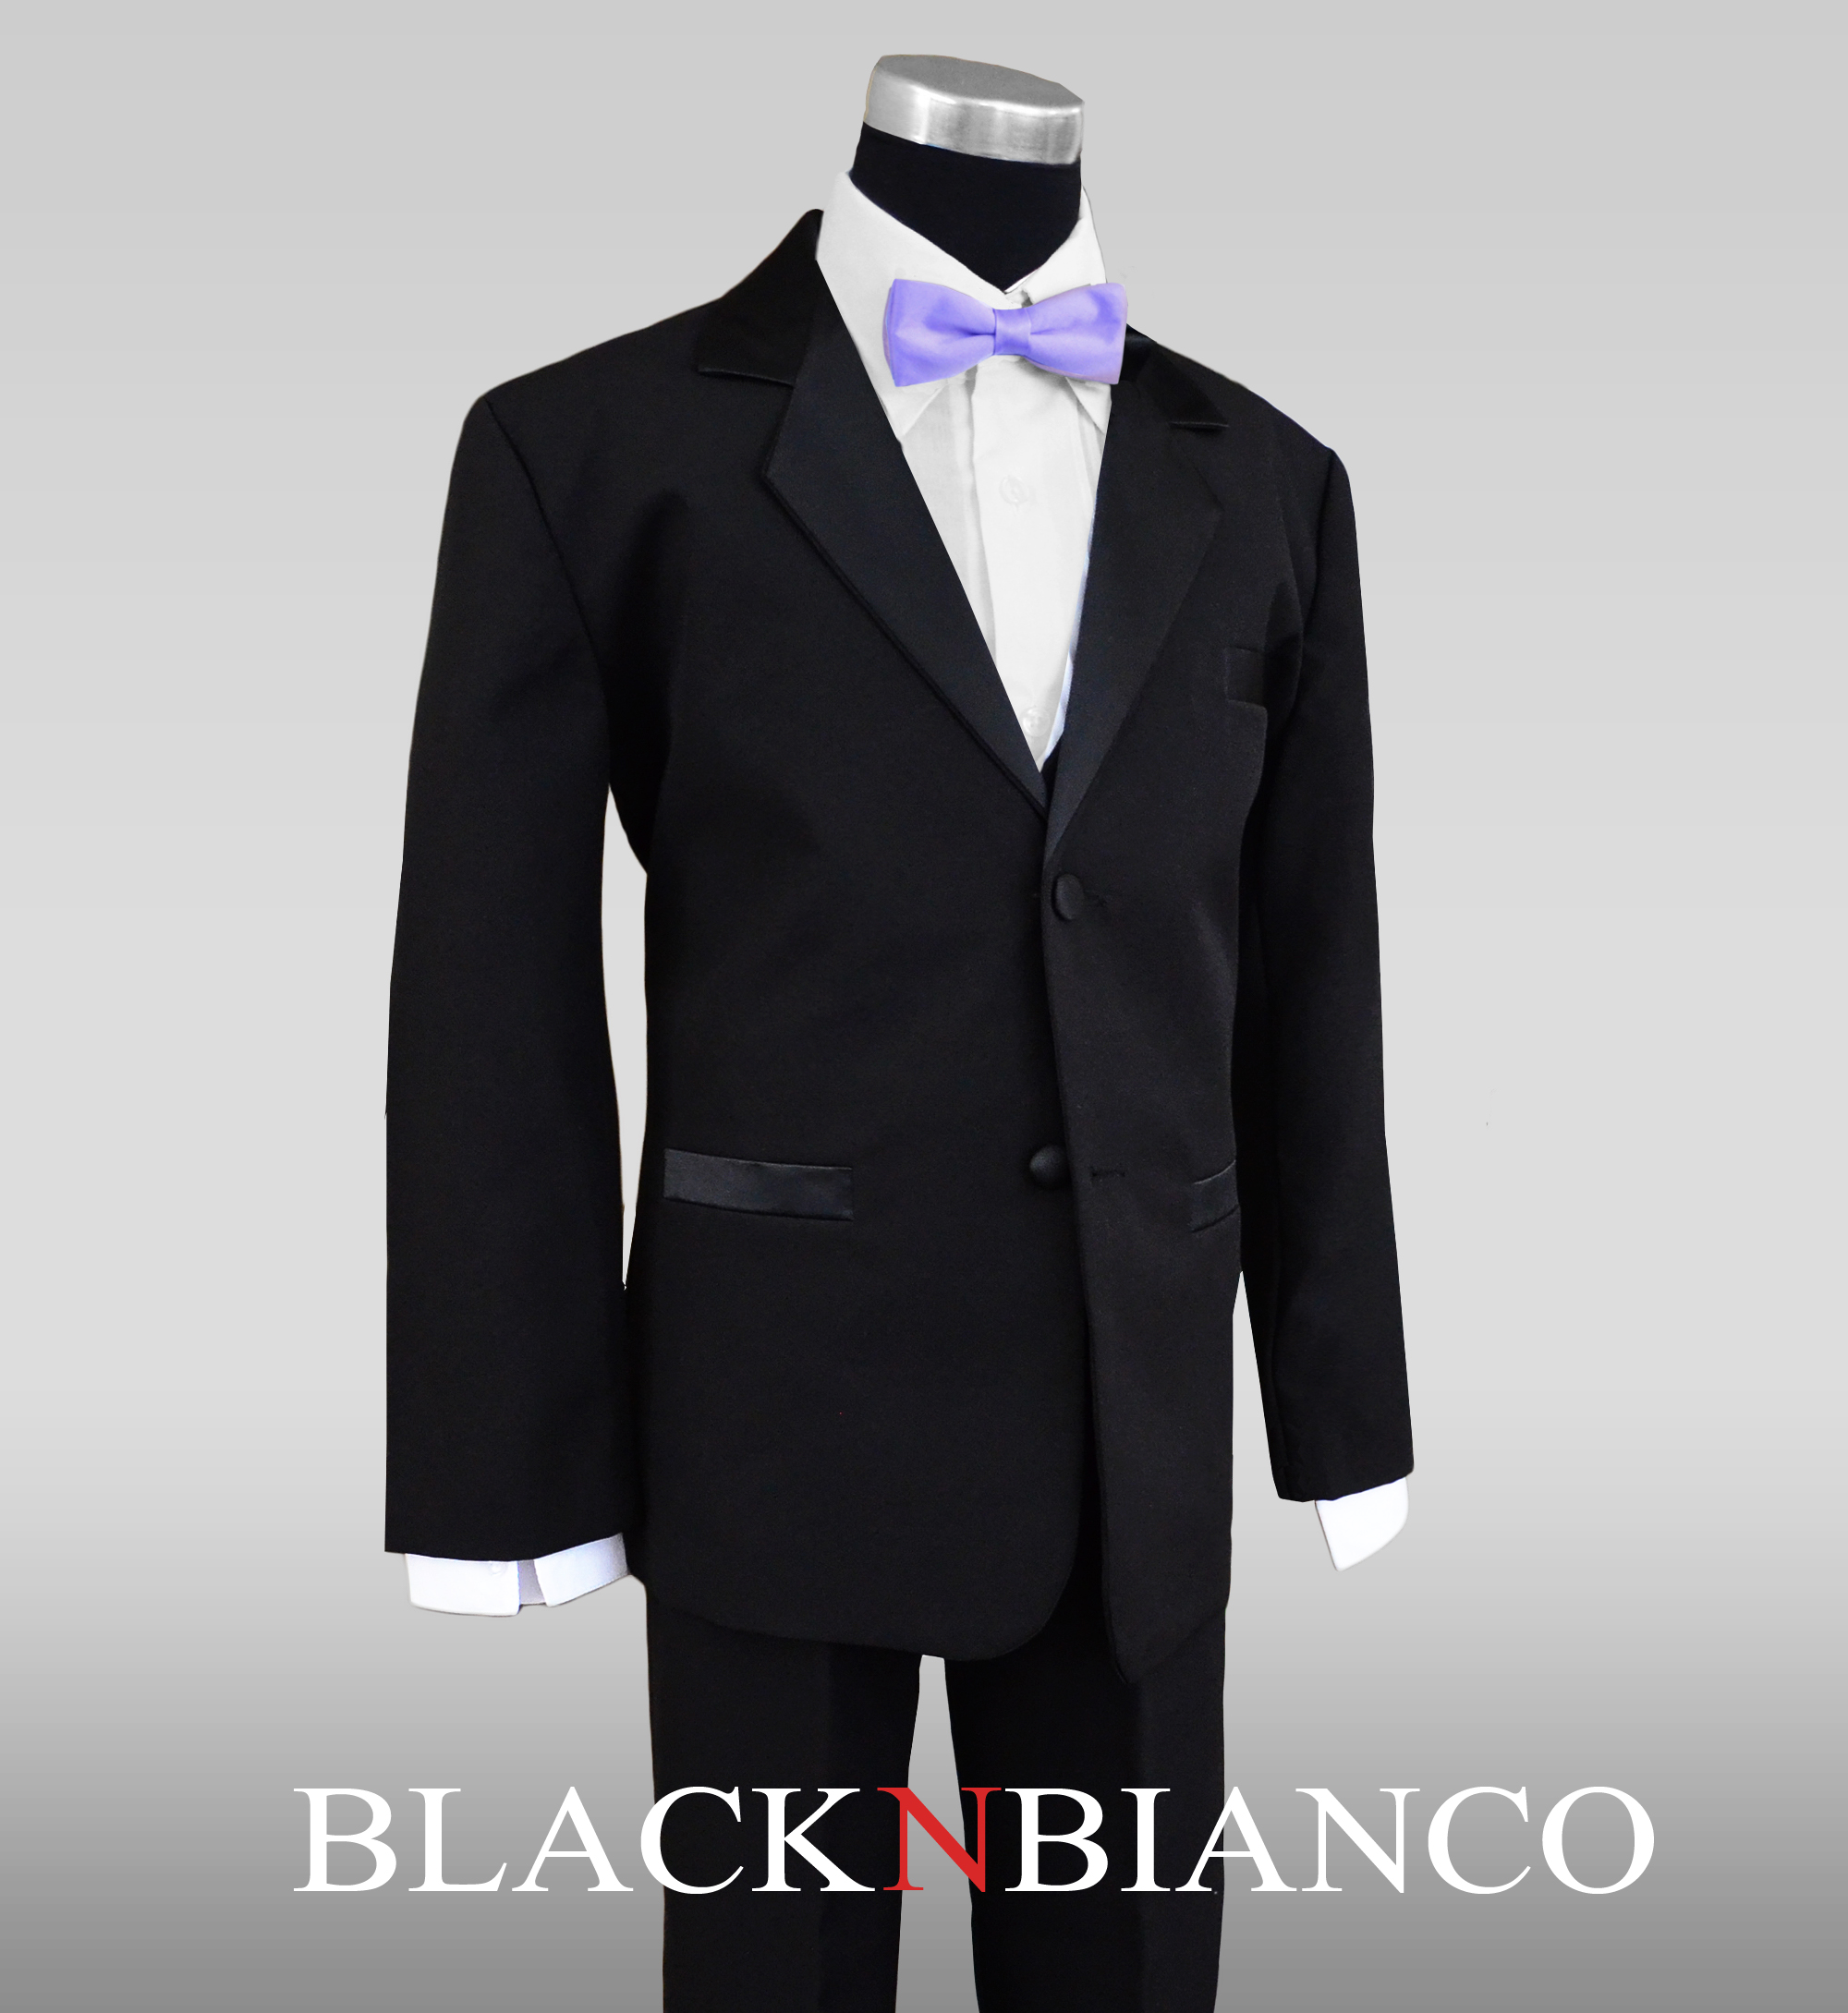 Big Boys Tuxedo in Black with a Lilac Light Purple Bow Tie